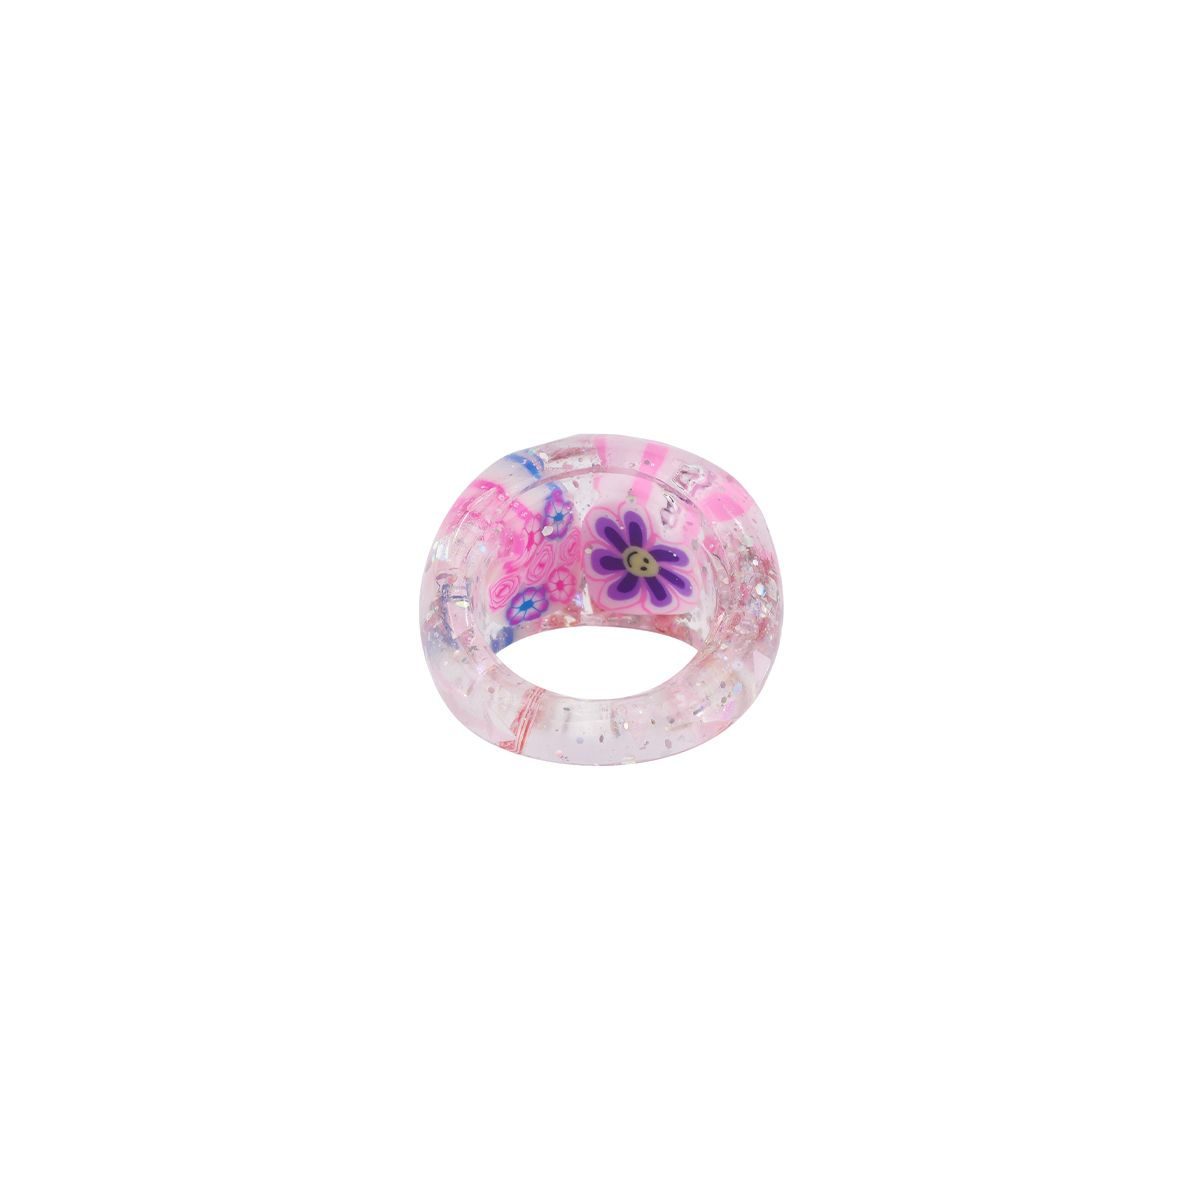 HURJABOYACC TWO HEARTS RING / PINK